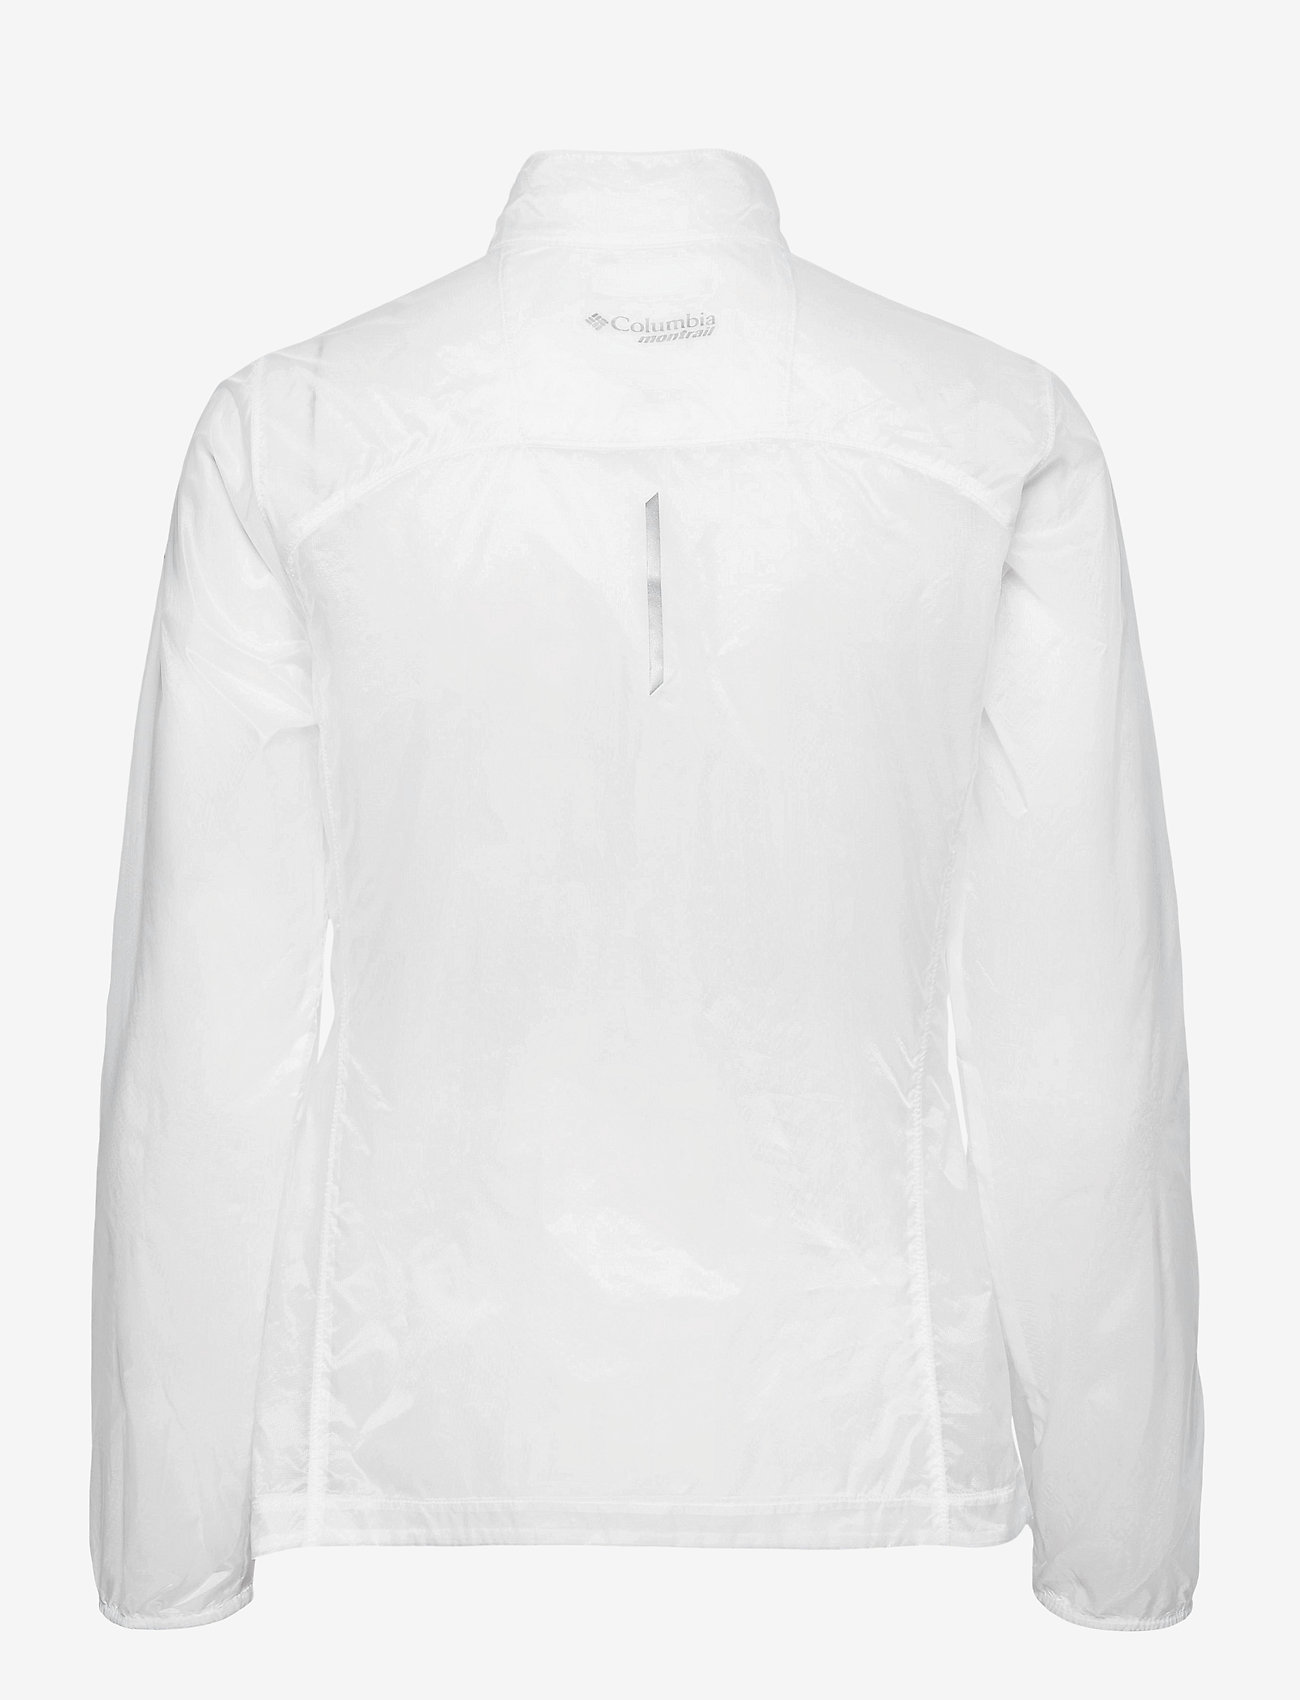 Columbia - W FKT™ Windbreaker Jacket - white aerial em - 1